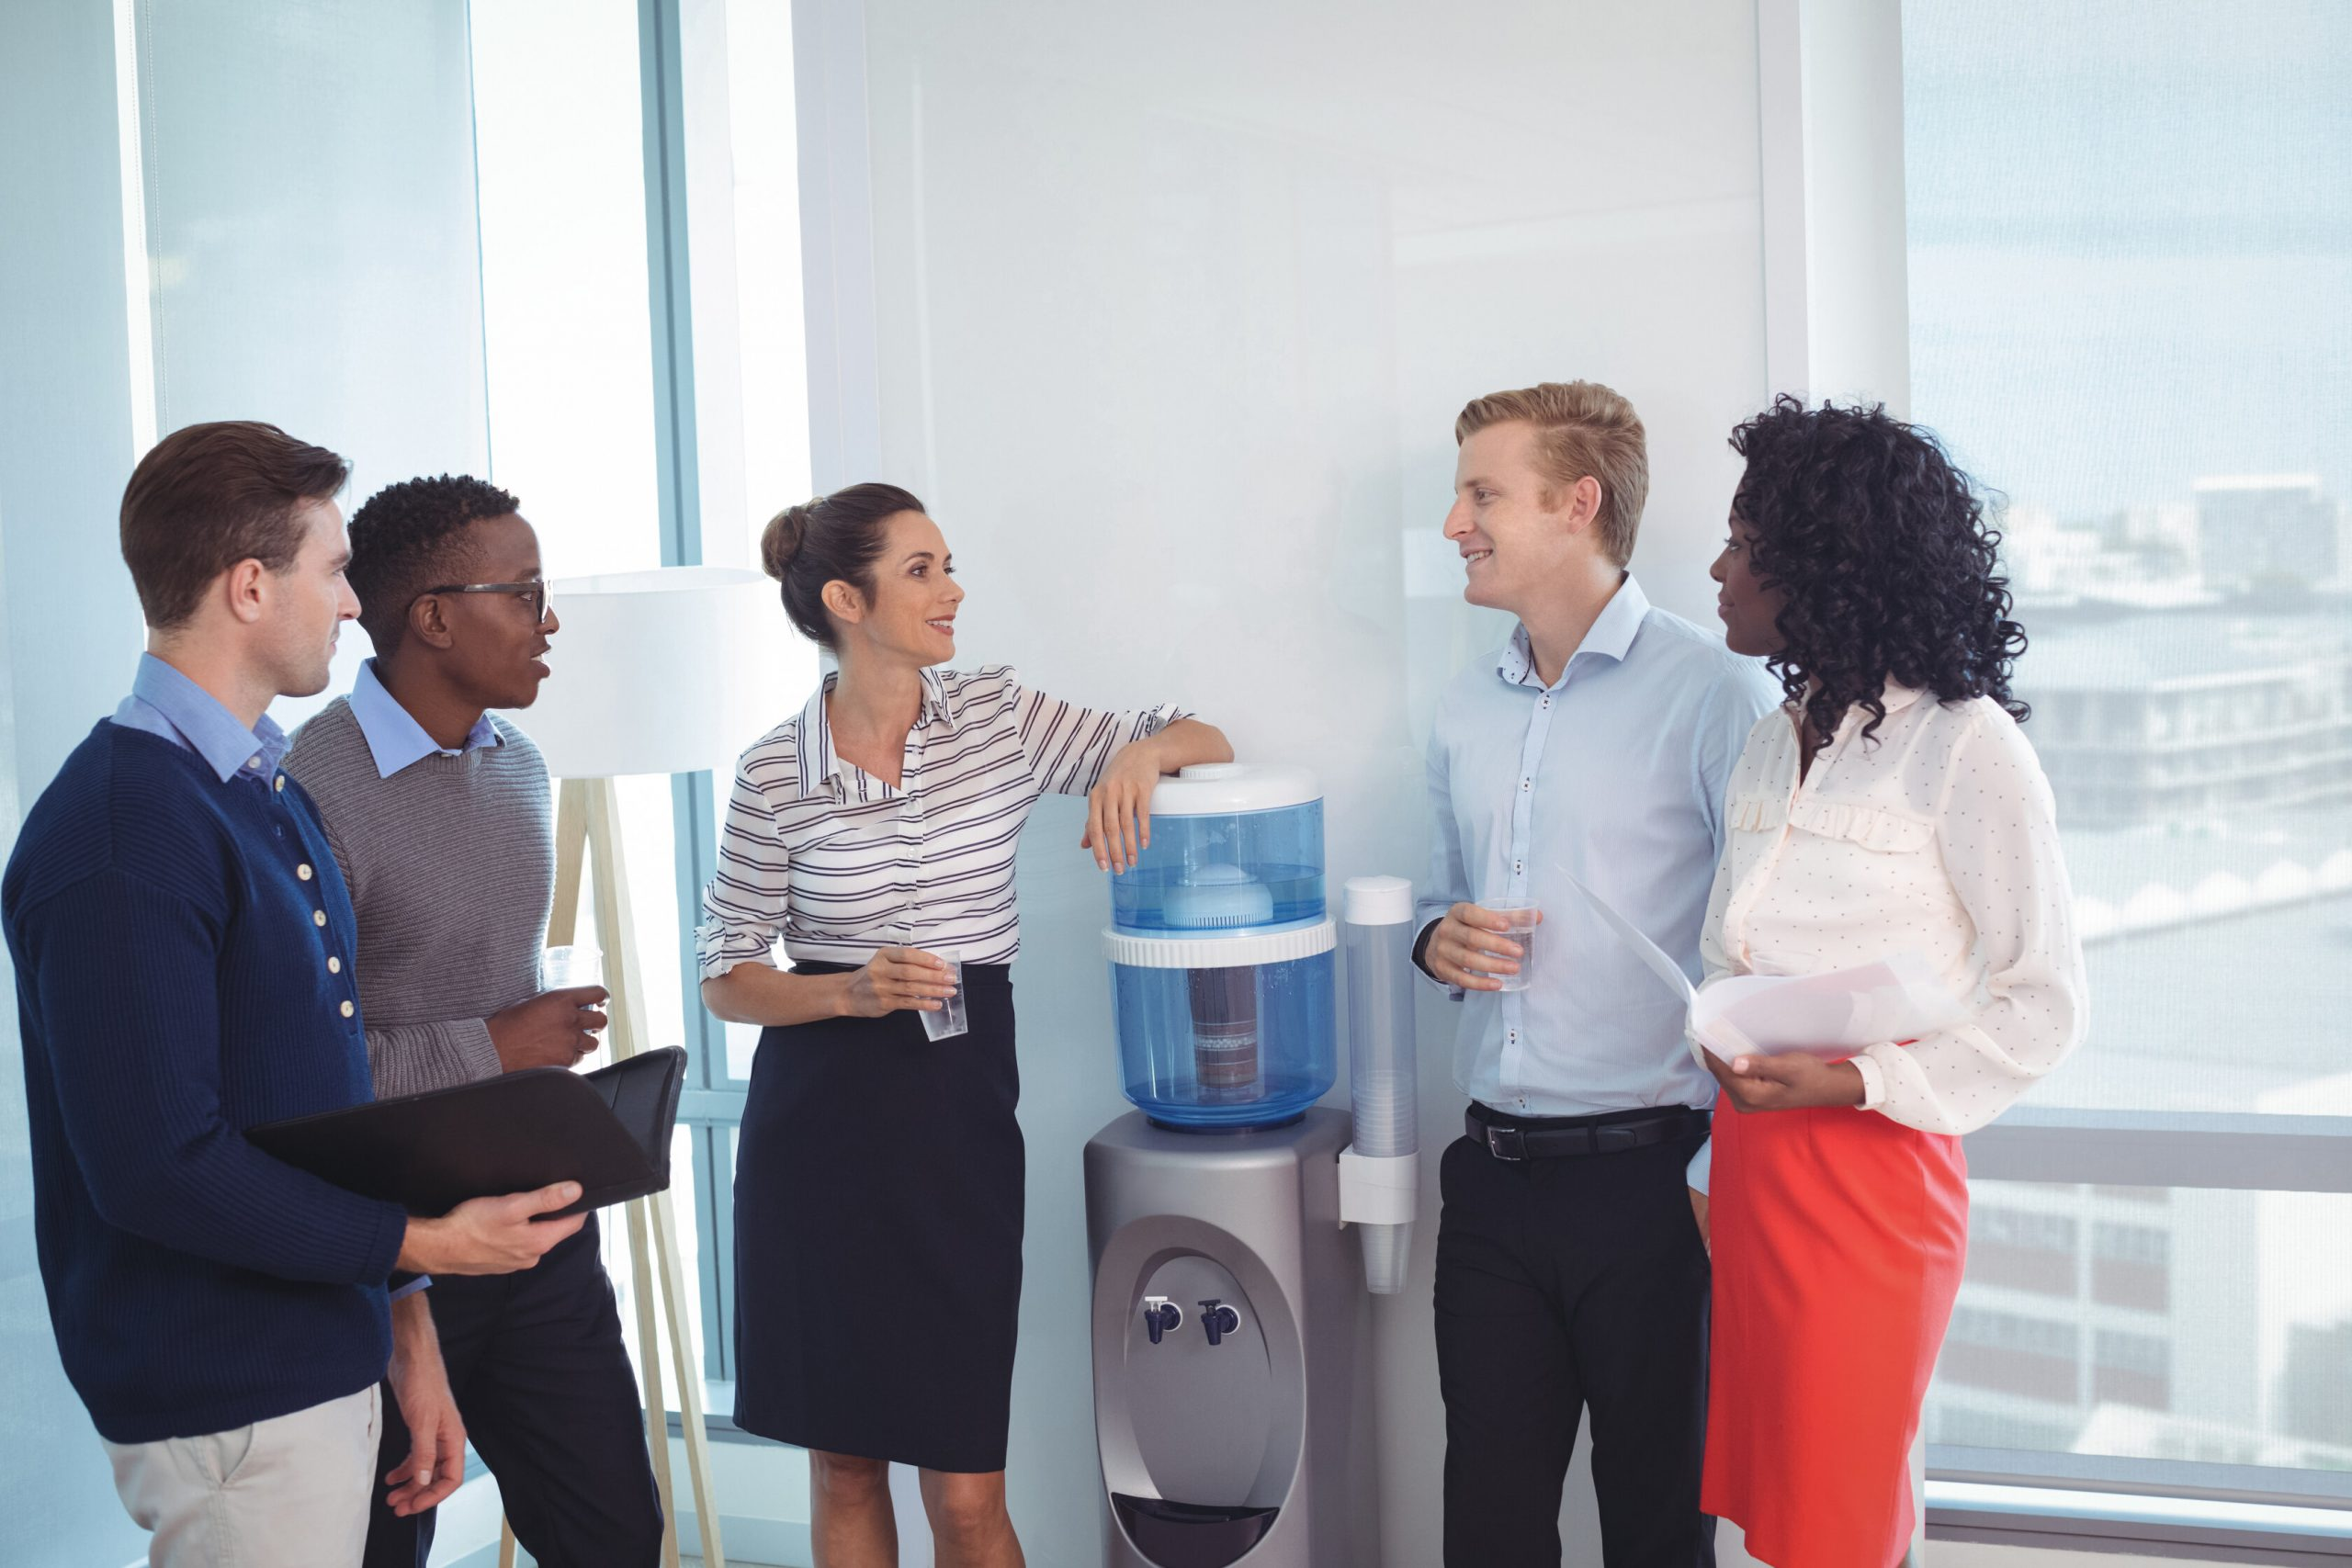 Back to the Watercooler